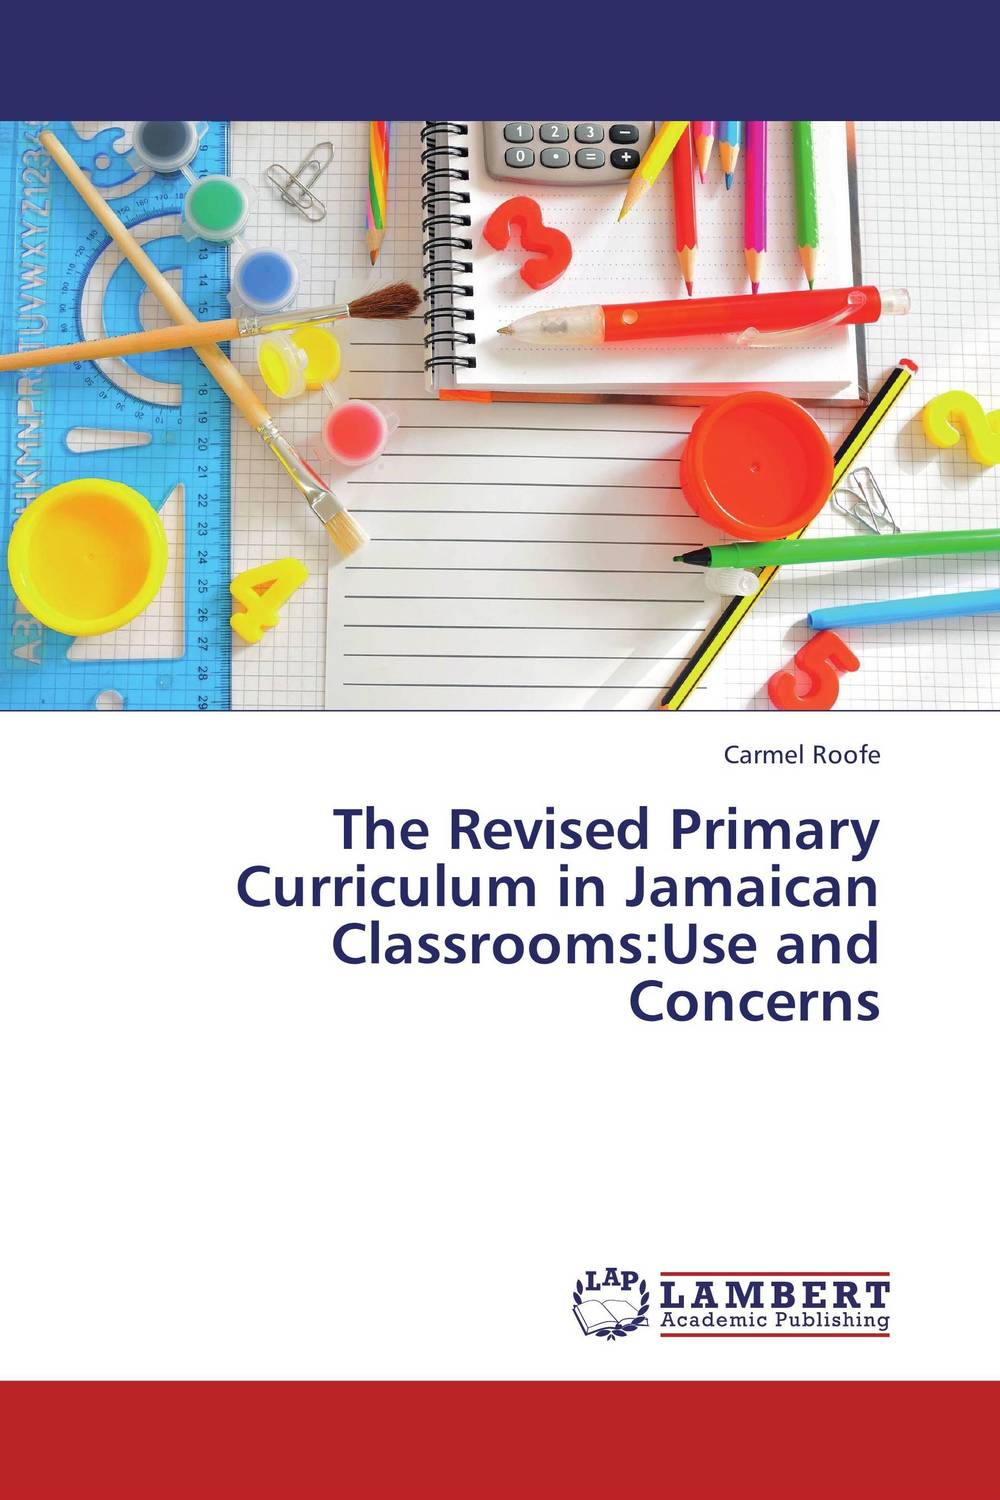 The Revised Primary Curriculum in Jamaican Classrooms:Use and Concerns jamaica jamaica no problem